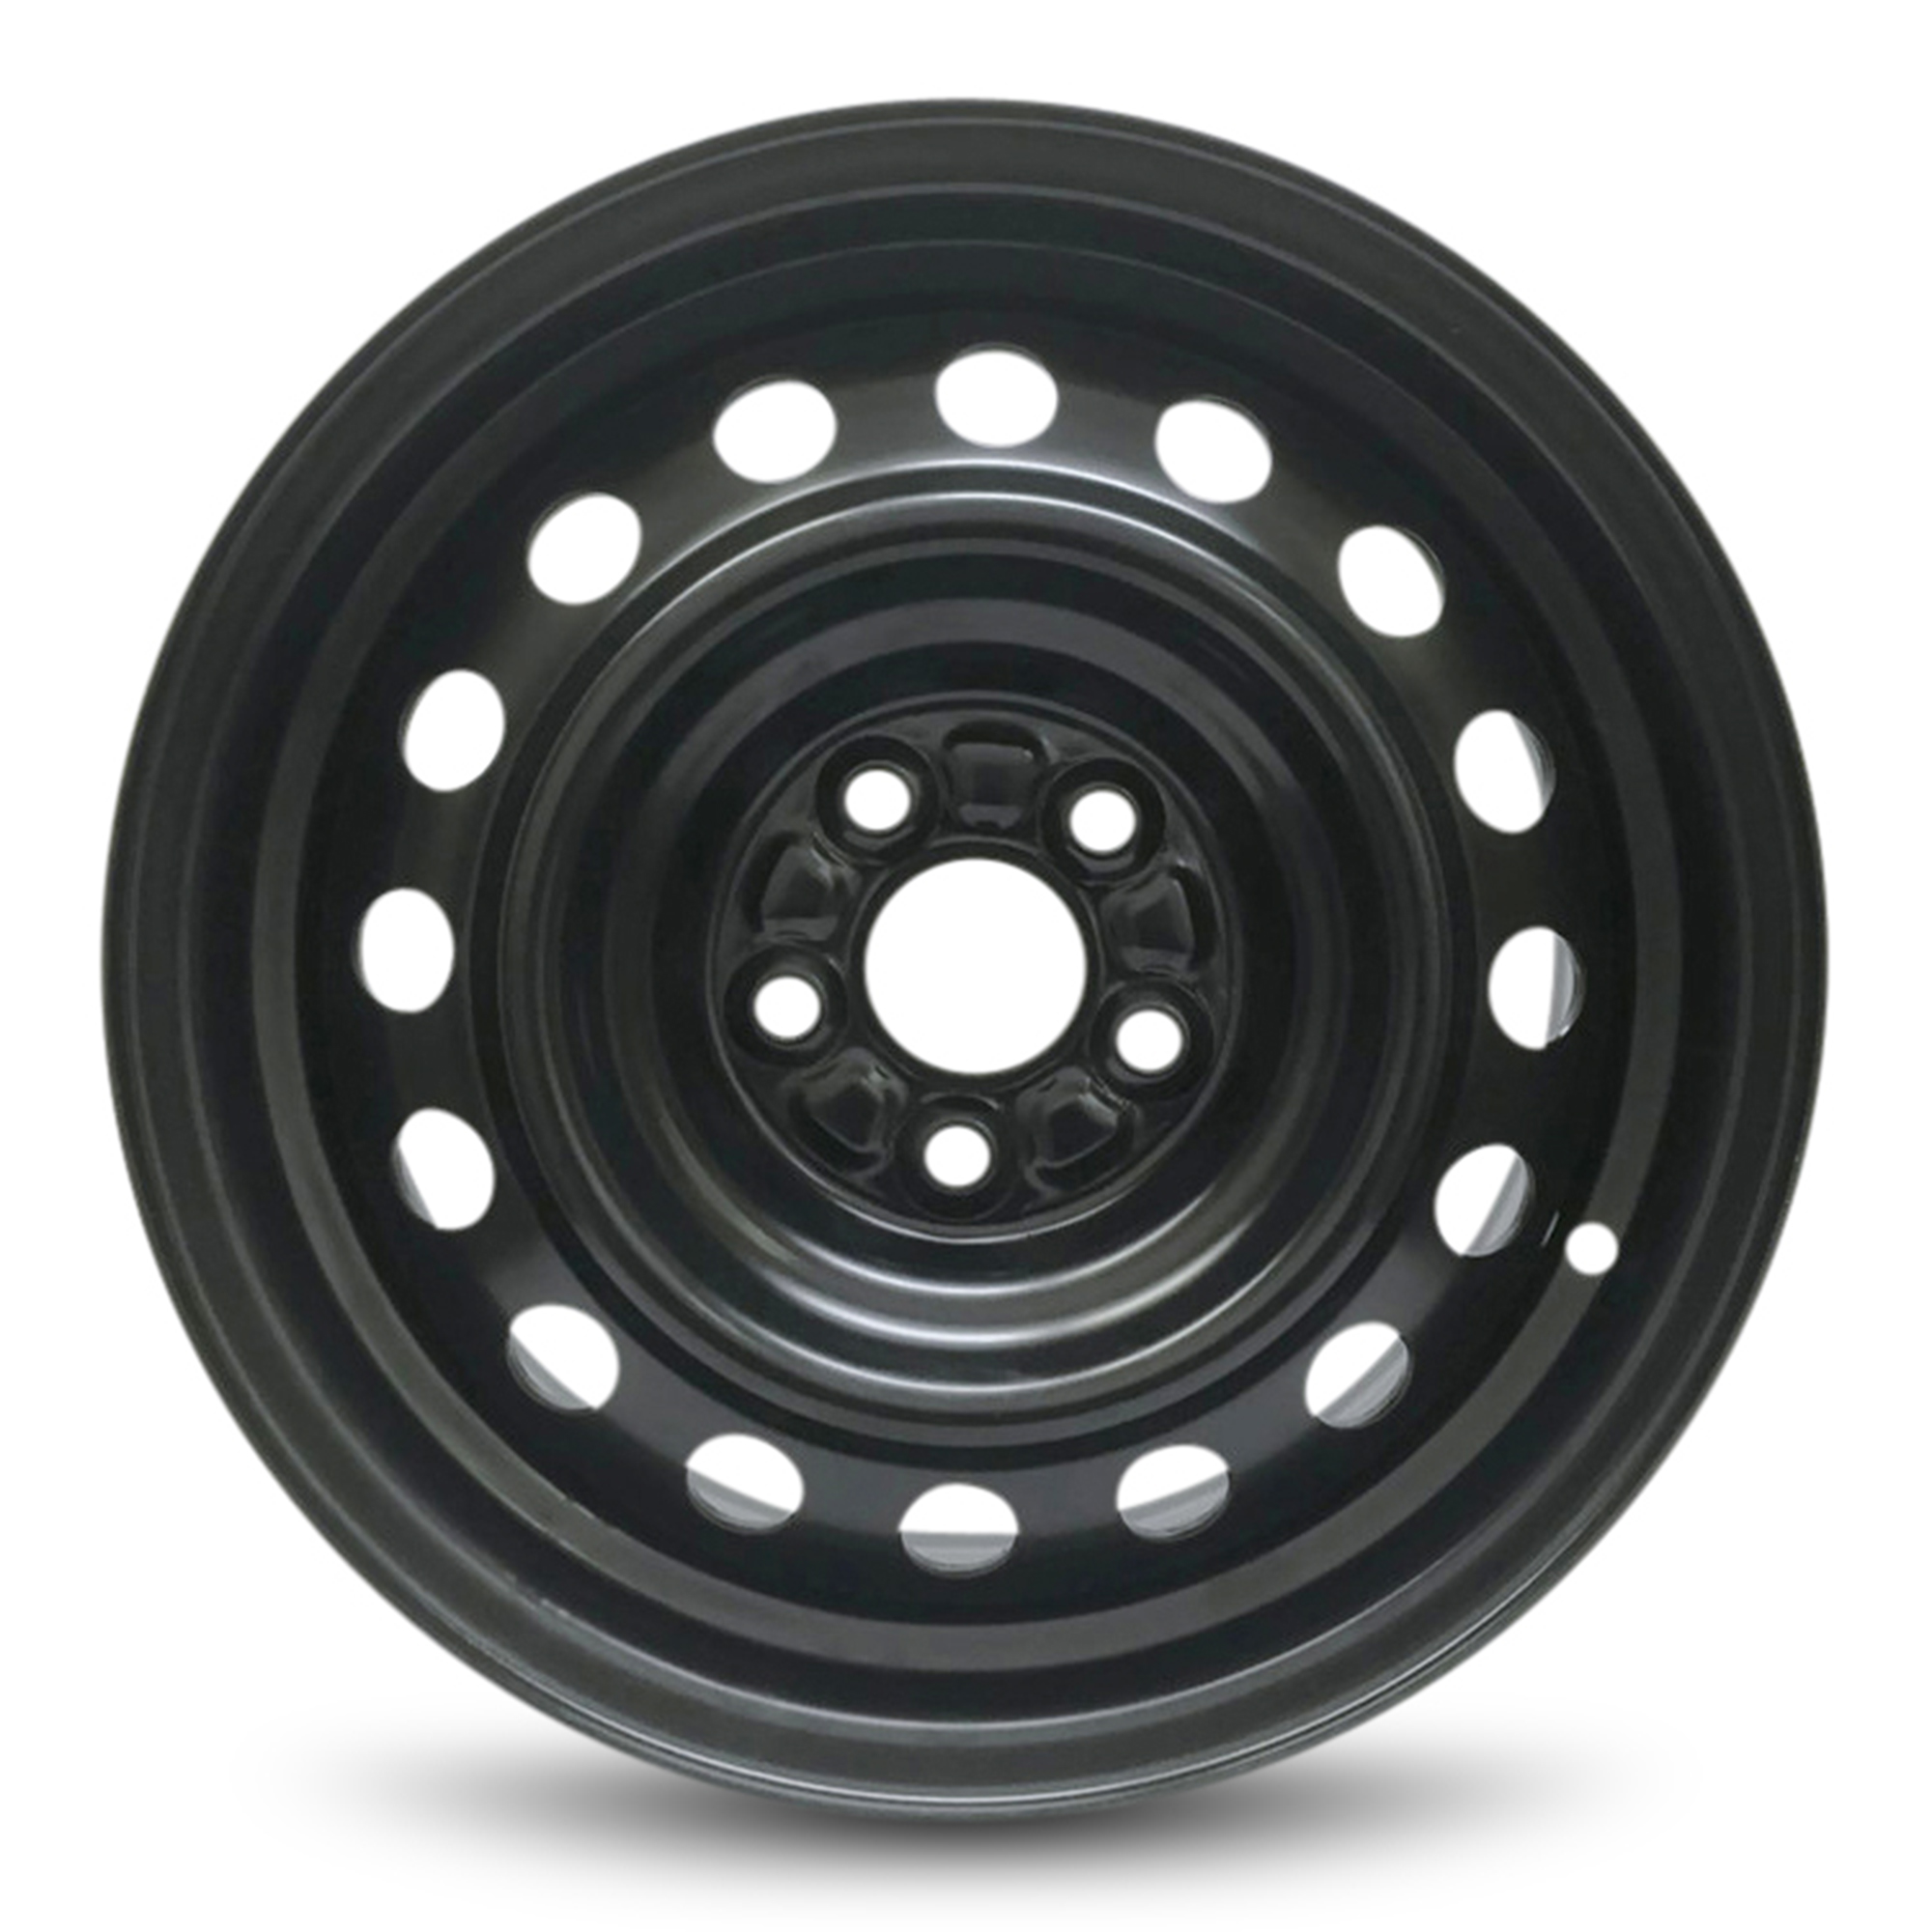 Buy Online Toyota Corolla Steel Wheels Road Ready Wheels